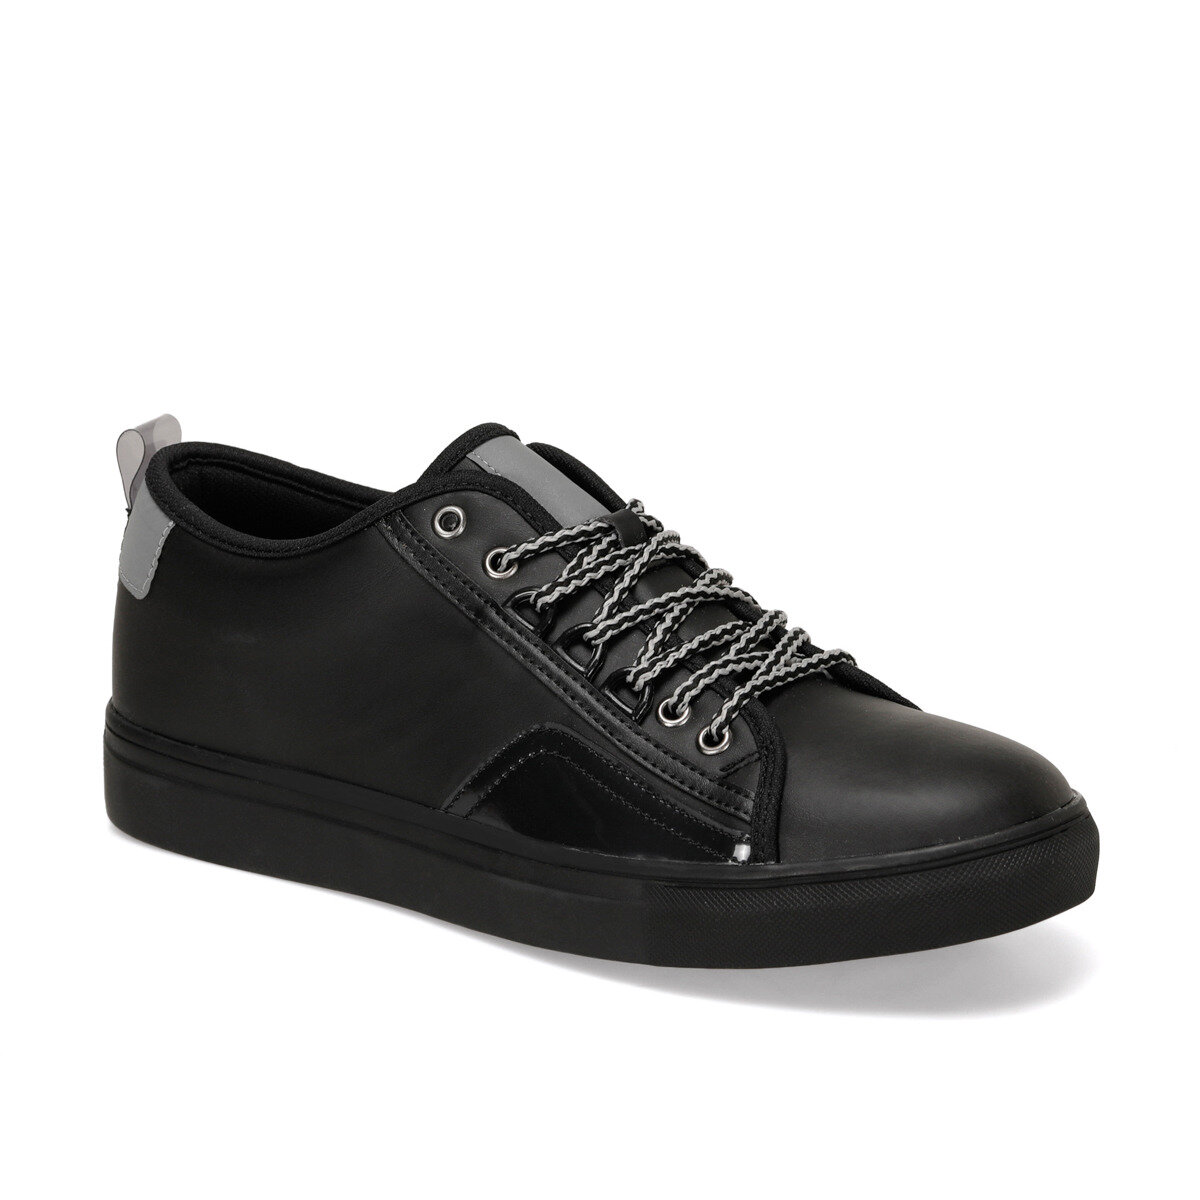 FLO HT408 Black Male Sneaker Forester